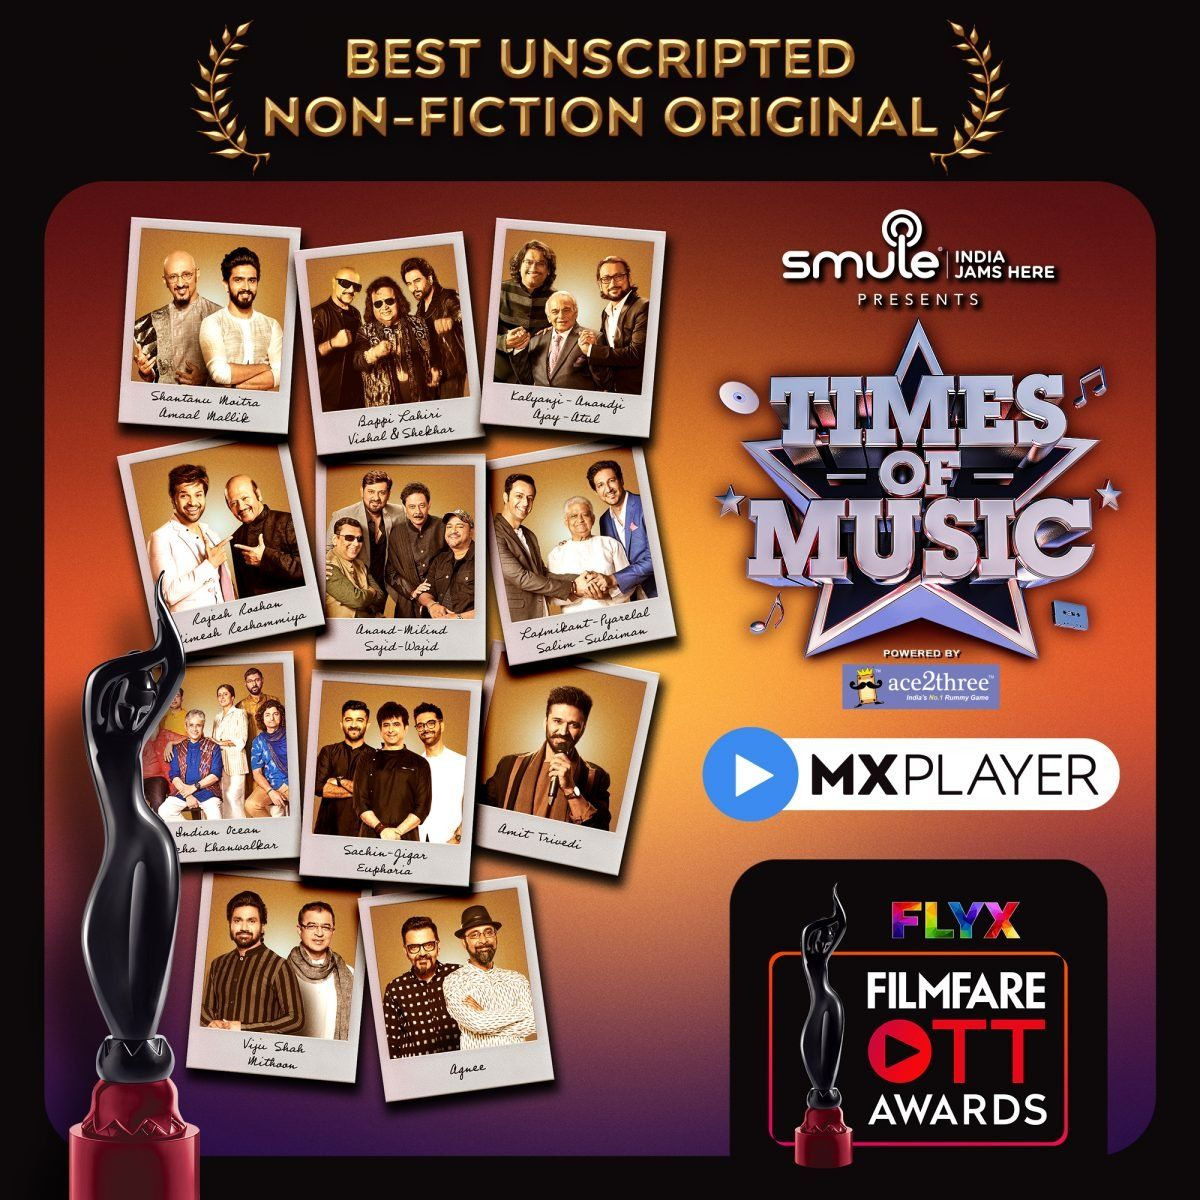 MX Player gets the Filmfare Black Lady home - Digpu News